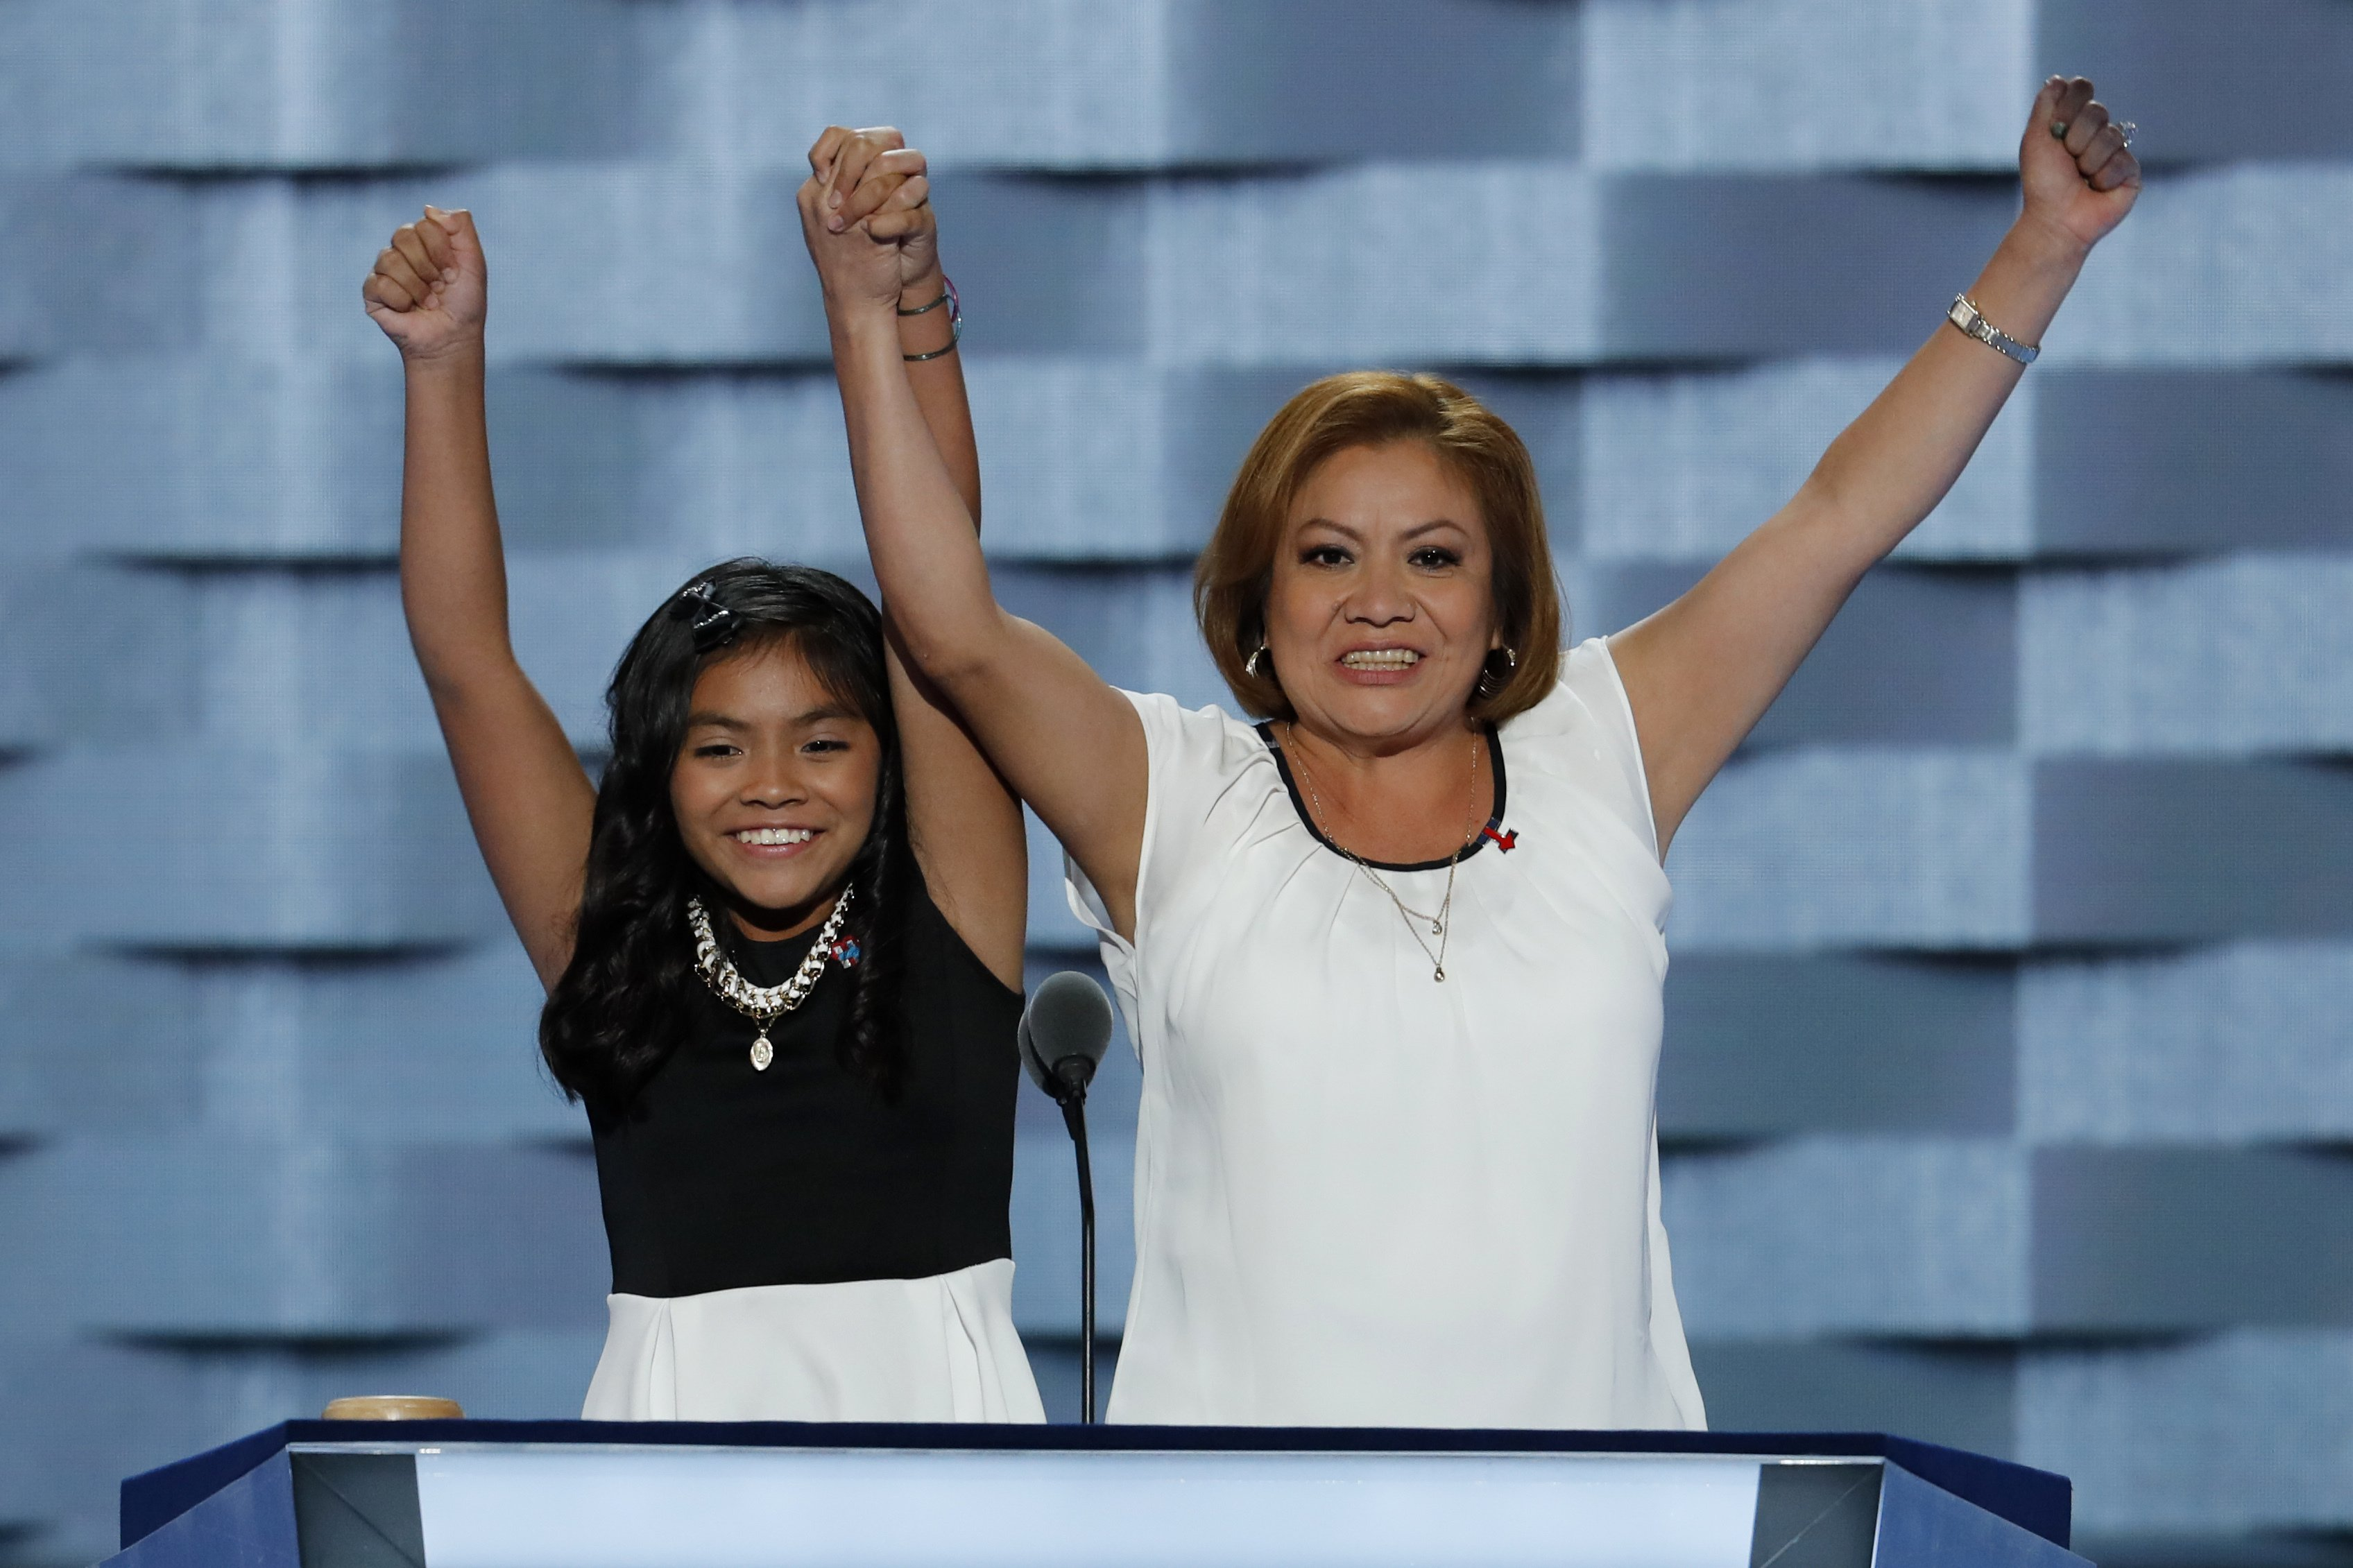 11-year-old Karla Ortiz, left, and her mother Francisca Ortiz speak during the first day of the Democratic National Convention in Philadelphia on Monday, July 25, 2016.